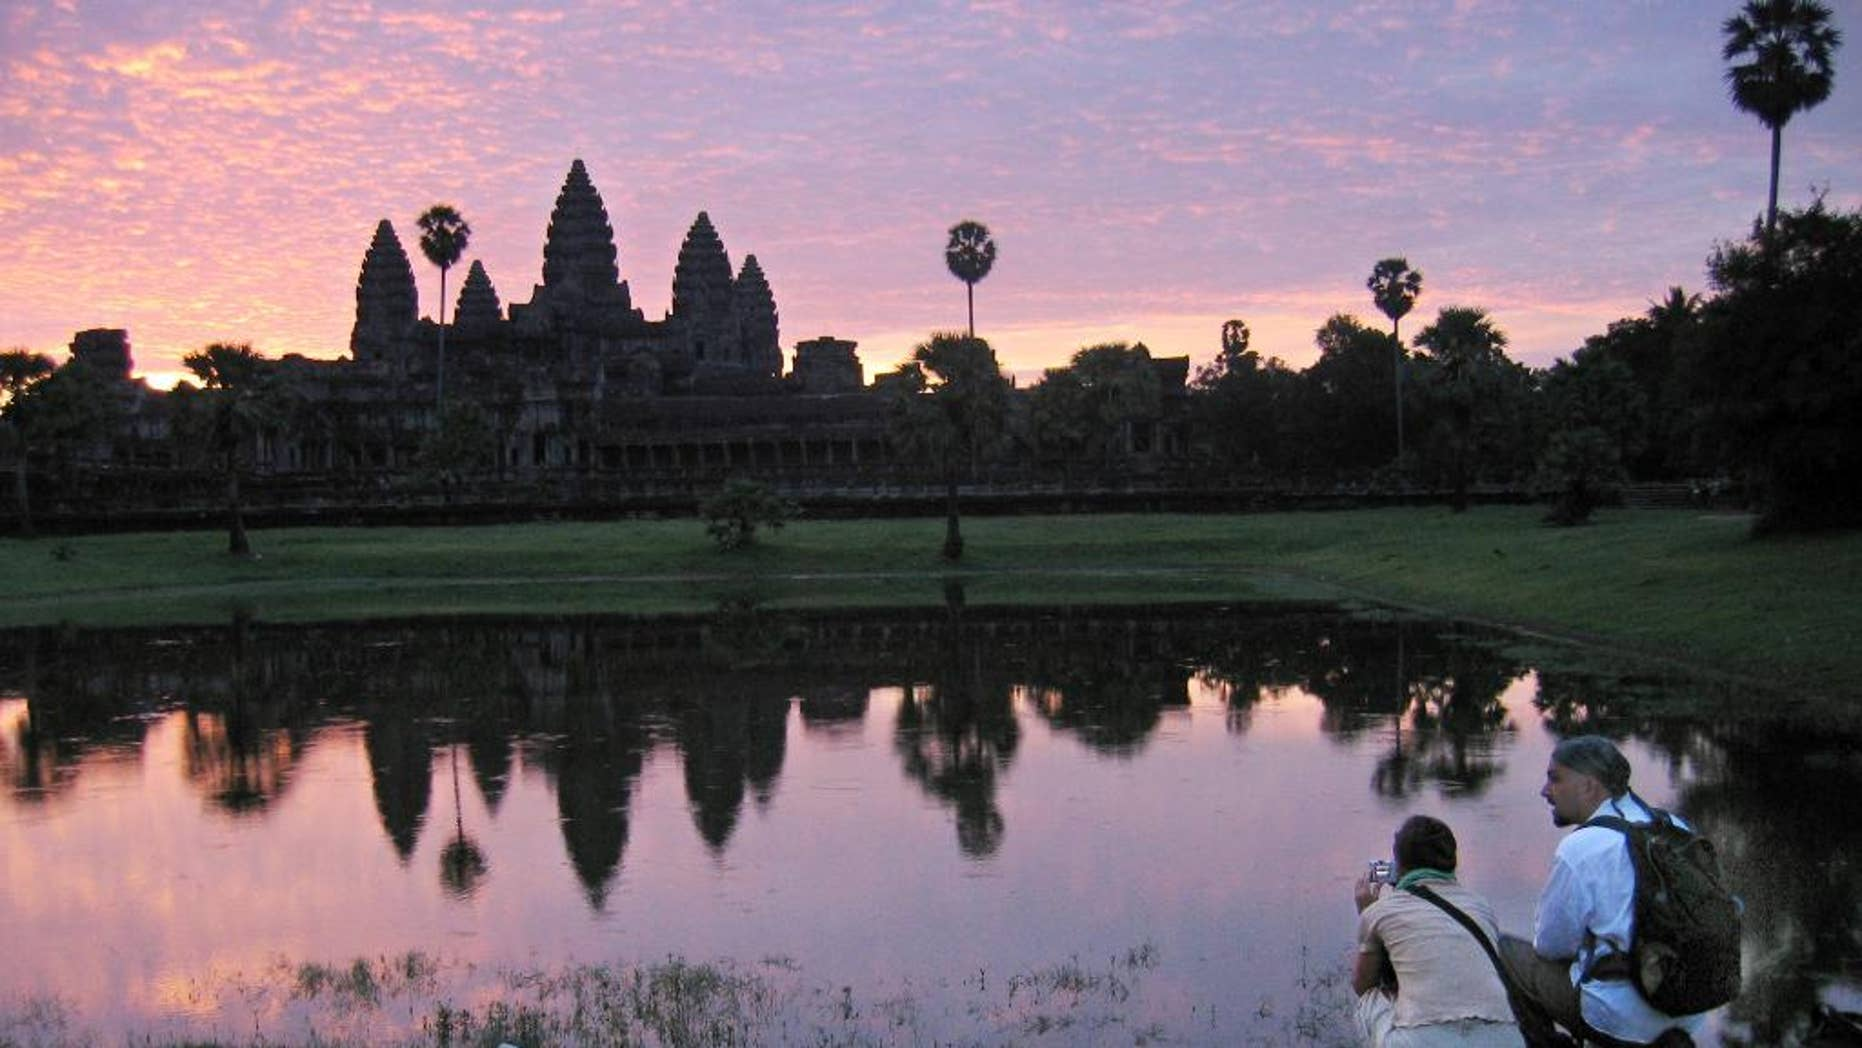 FILE - In this July 14, 2014 file photo, tourists look at the view of the Angkor Wat temples at sunrise, outside Siem Reap, Cambodia. An Australian archeologist says he and colleagues have found evidence of previously undiscovered medieval urban and agricultural networks surrounding the ancient city of Angkor Wat. Using high-tech lasers to scan the Cambodian jungle, Damian Evans and colleagues say they found traces of extensive networks surrounding the monumental stone temple complex at Angkor Wat.  (AP Photo/Anat Givon, File)